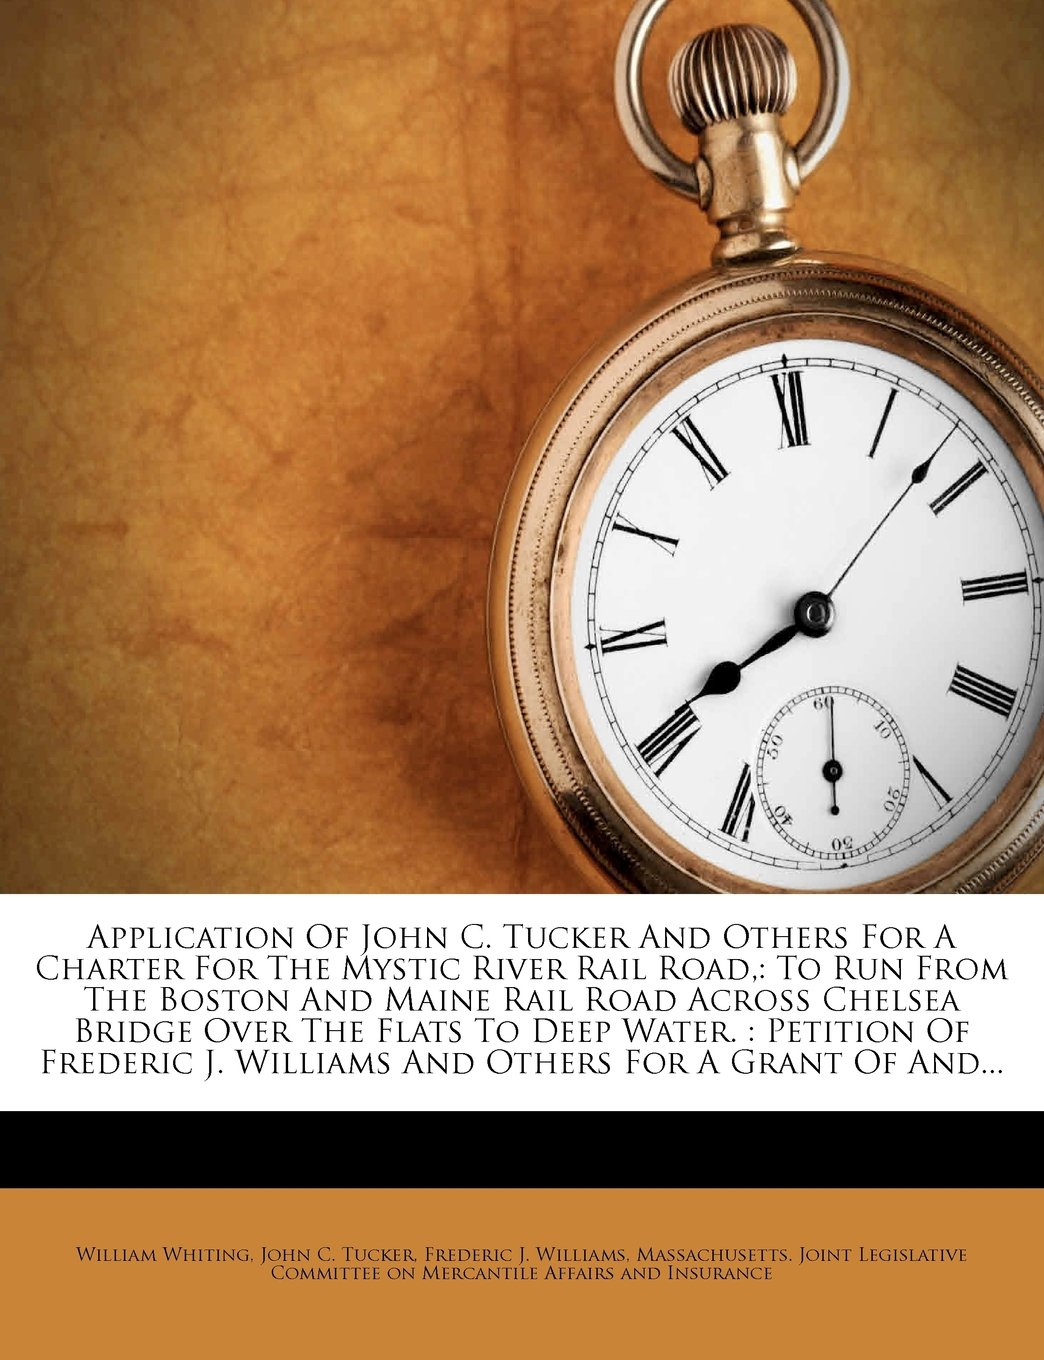 Download Application Of John C. Tucker And Others For A Charter For The Mystic River Rail Road,: To Run From The Boston And Maine Rail Road Across Chelsea ... J. Williams And Others For A Grant Of And... PDF